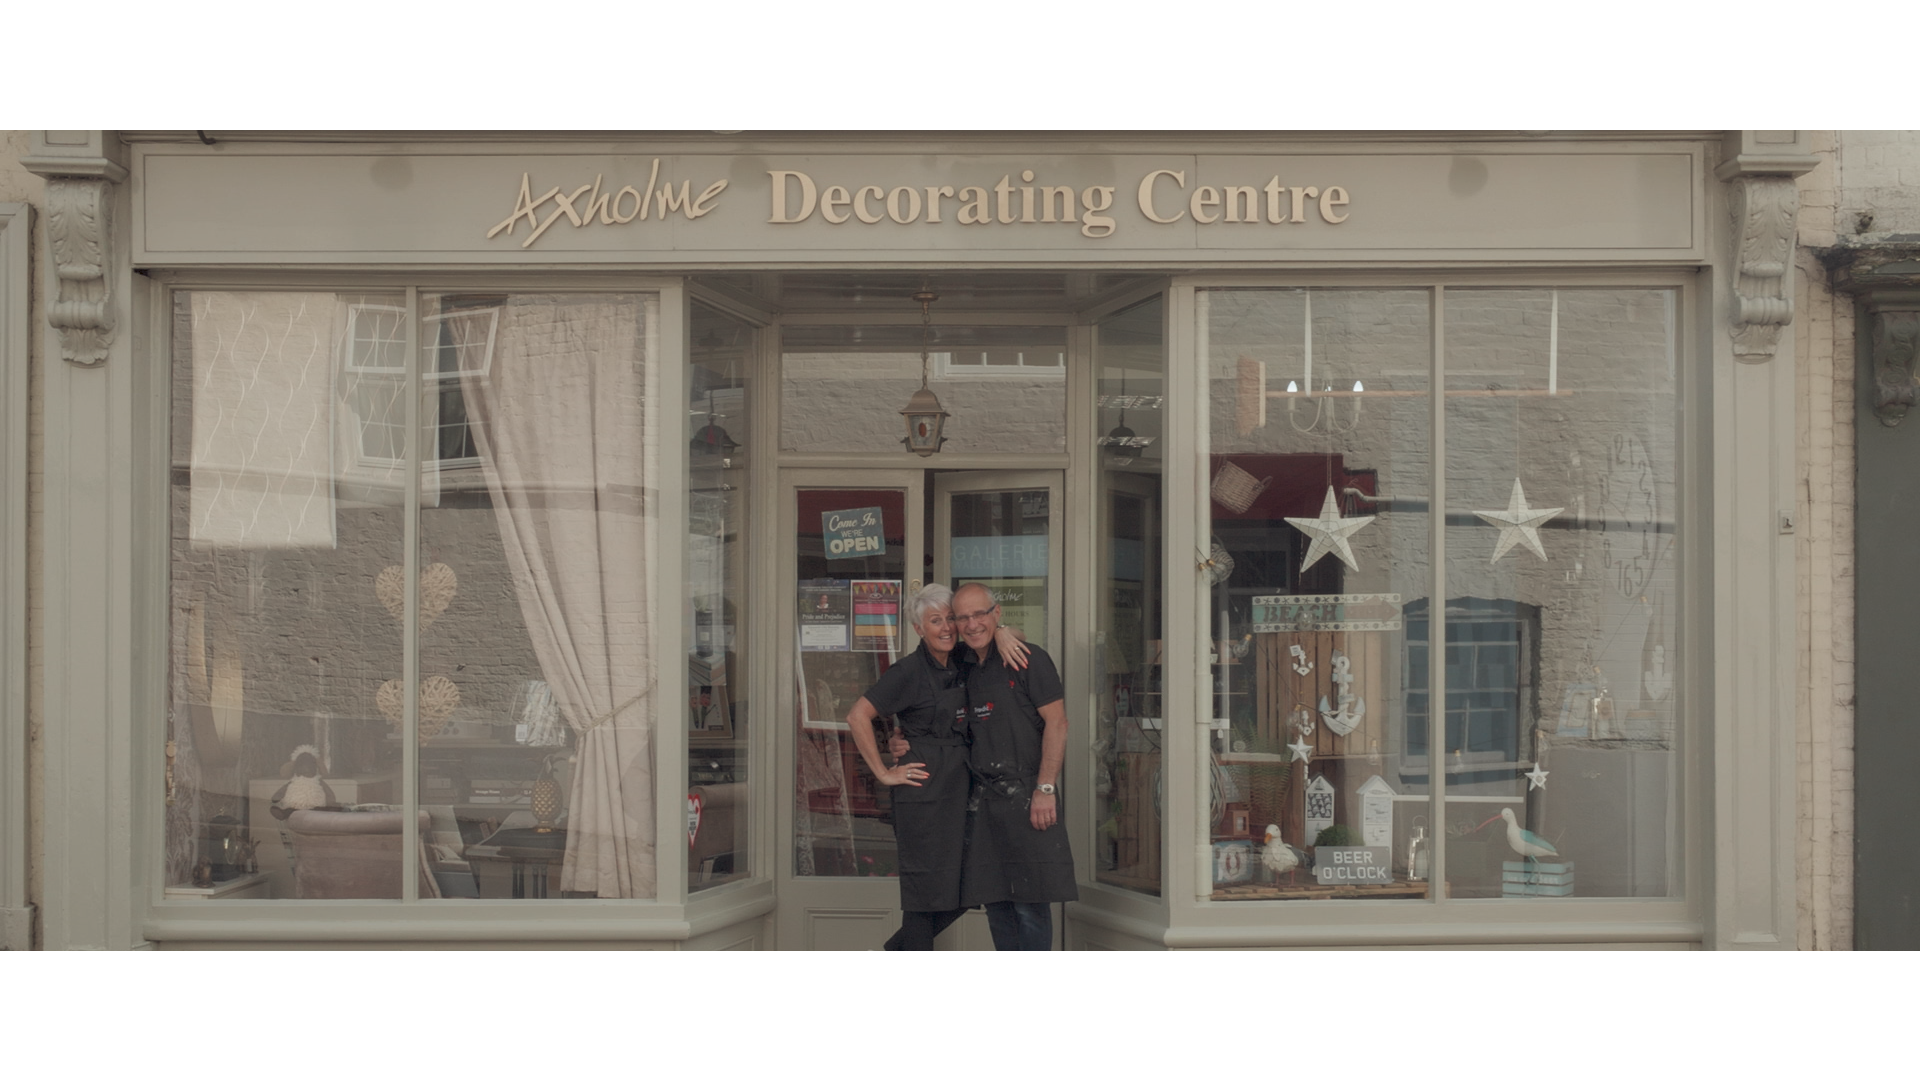 Axholme Decorating Centre - Jill and Dave.png